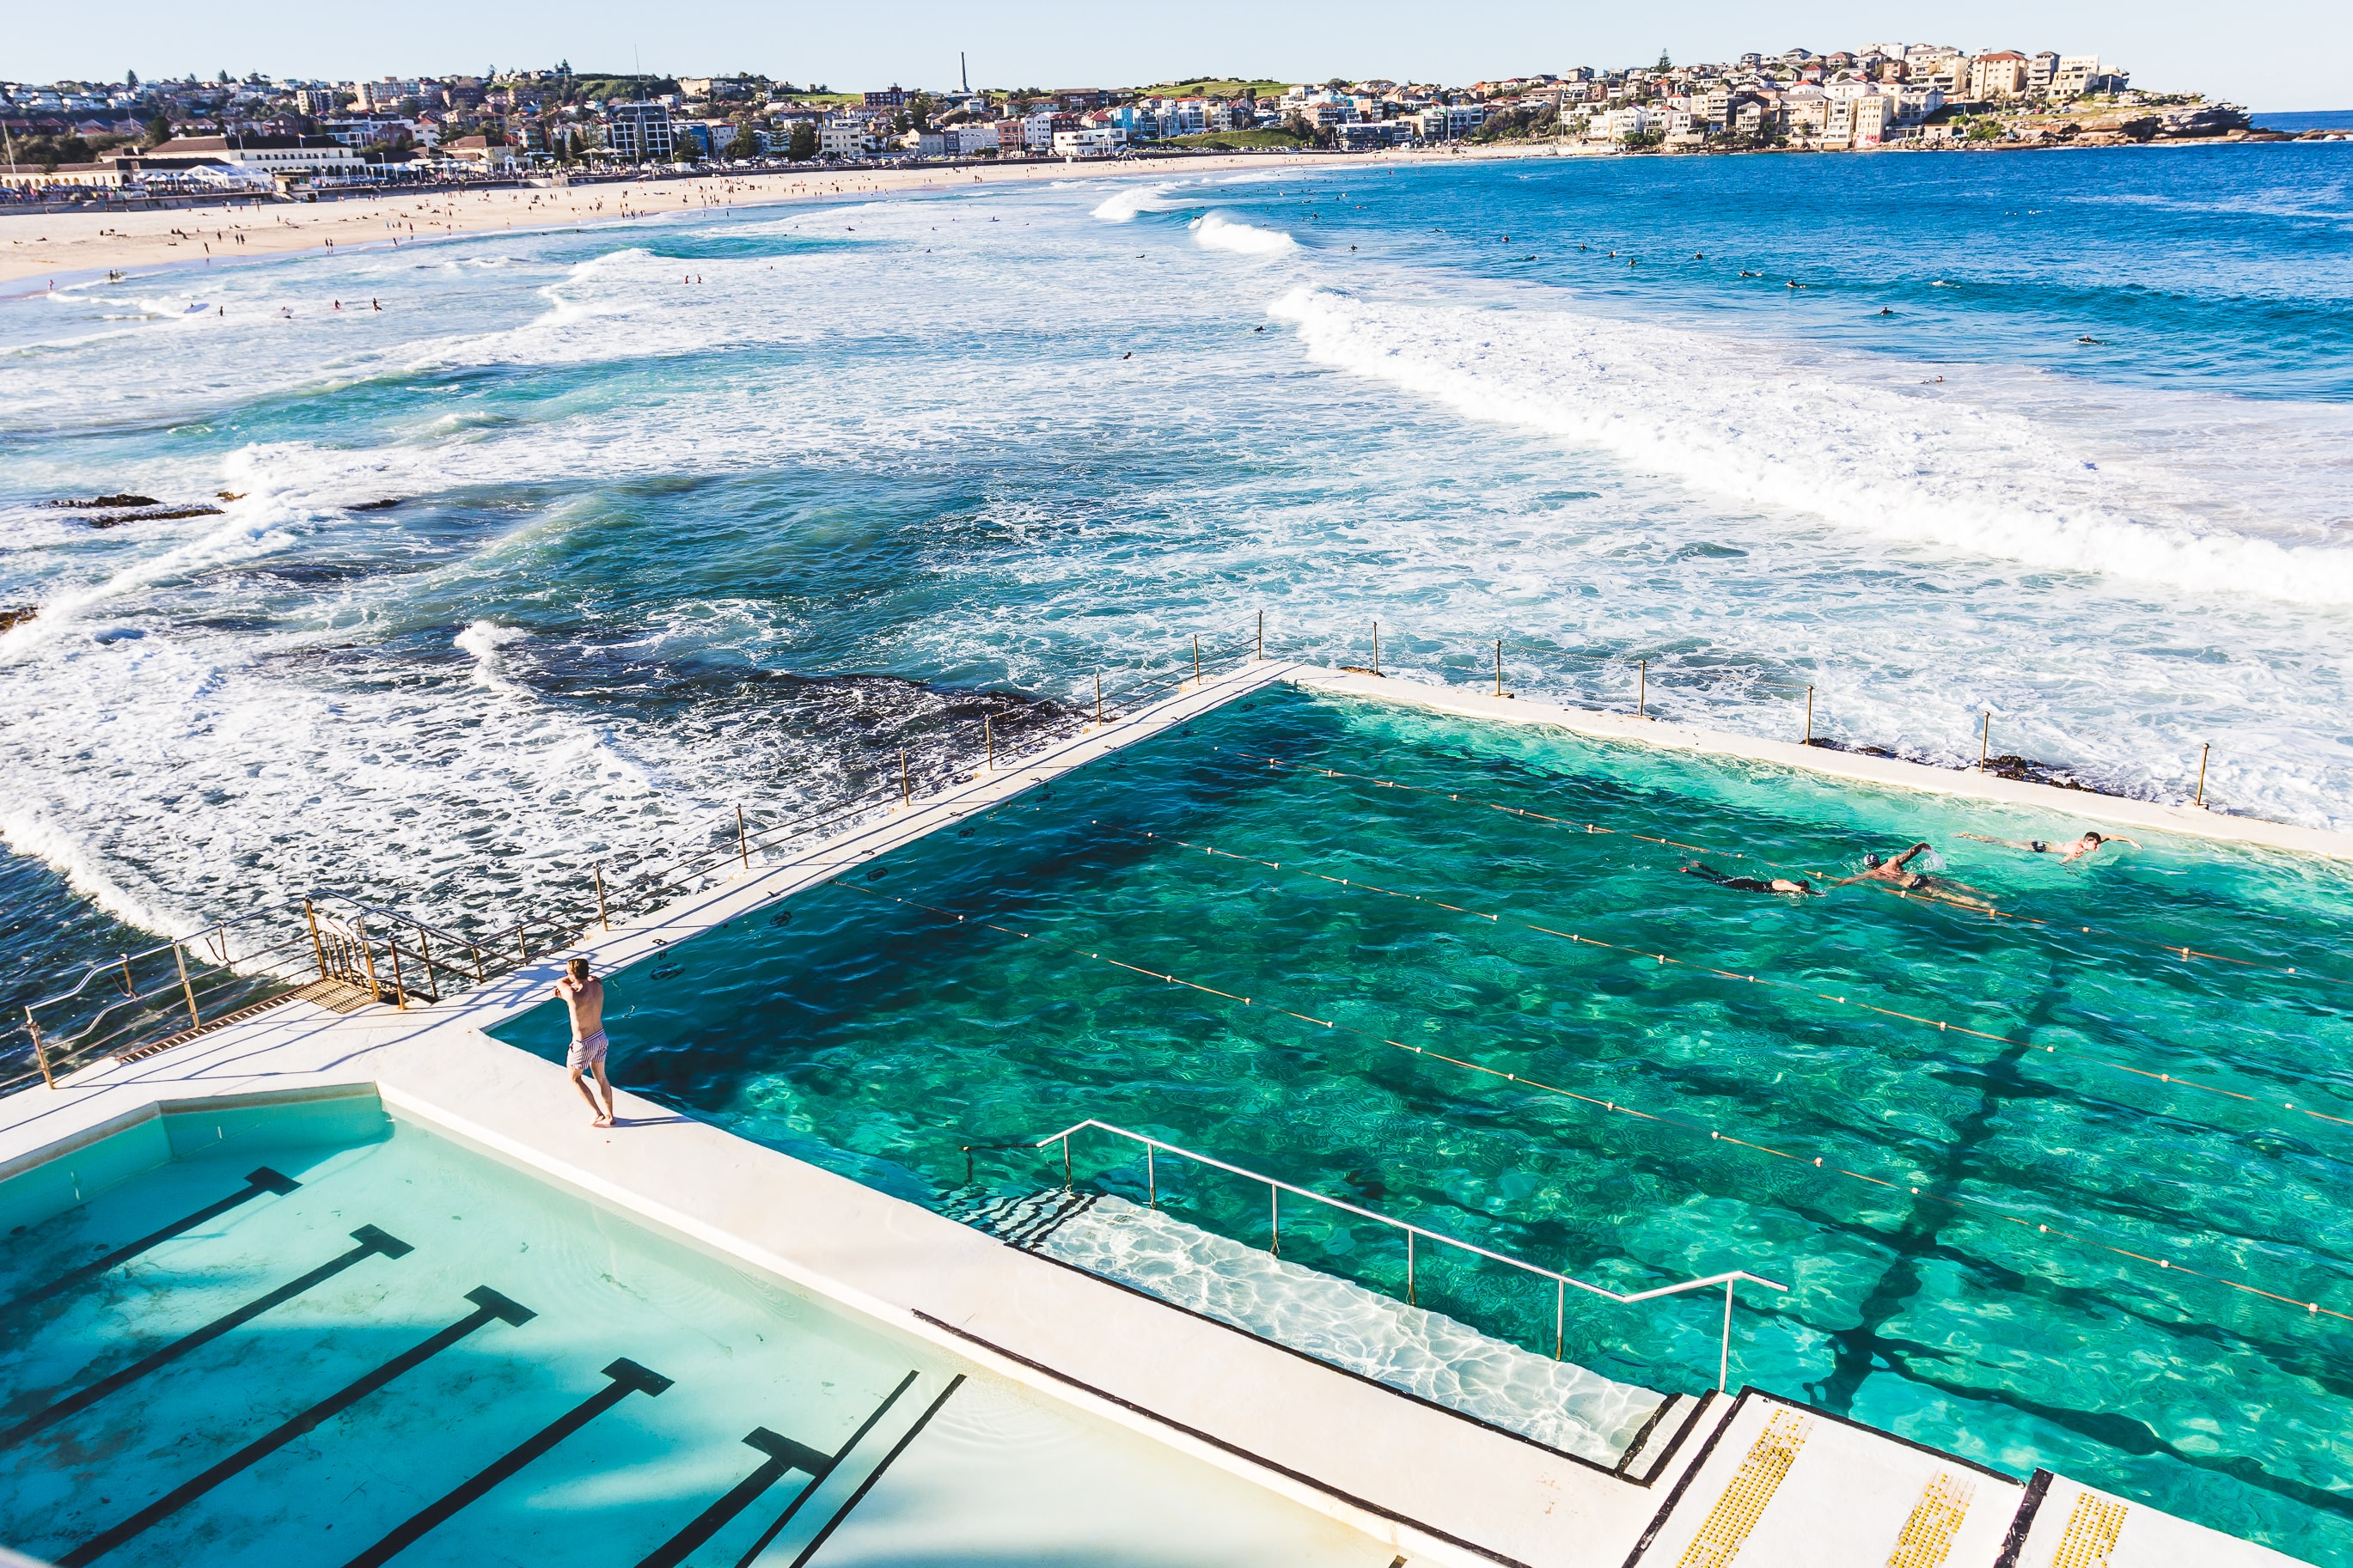 View of the outdoor pool by the ocean at Bondi Beach